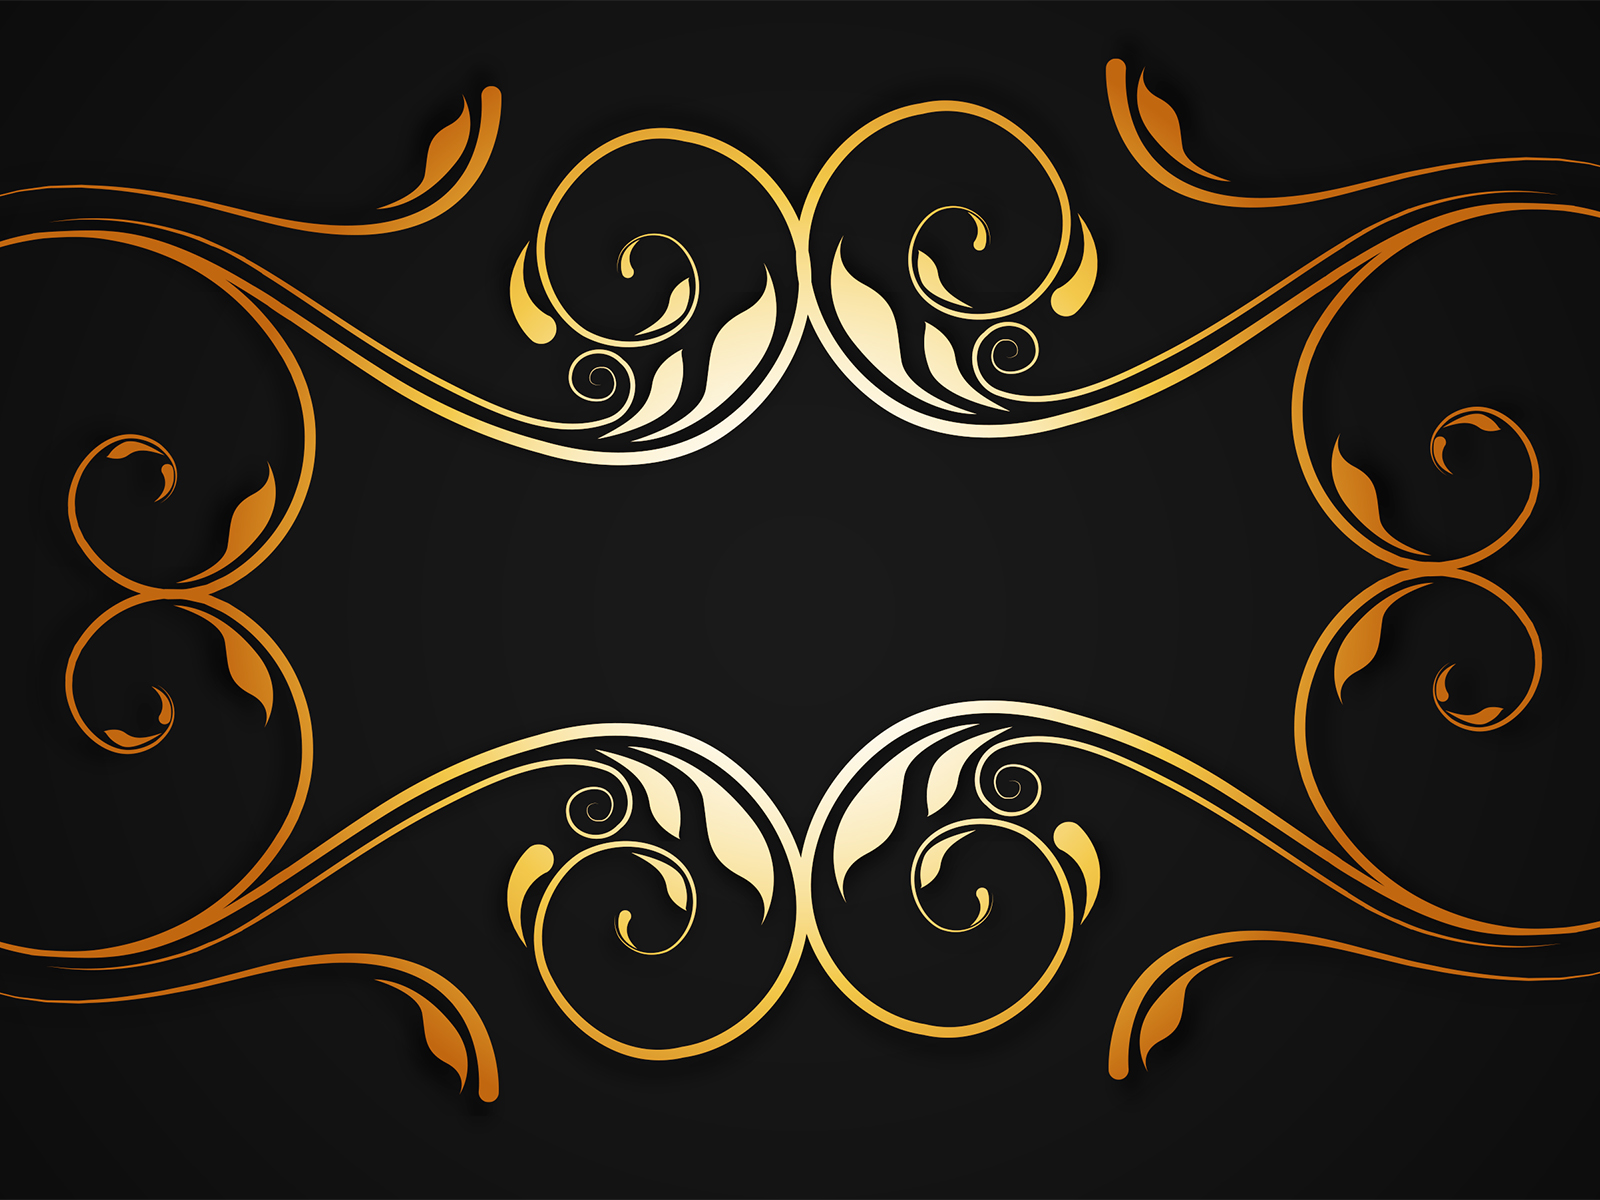 Modern Floral Wallpaper Golden Floral Border Backgrounds Black Border Amp Frames